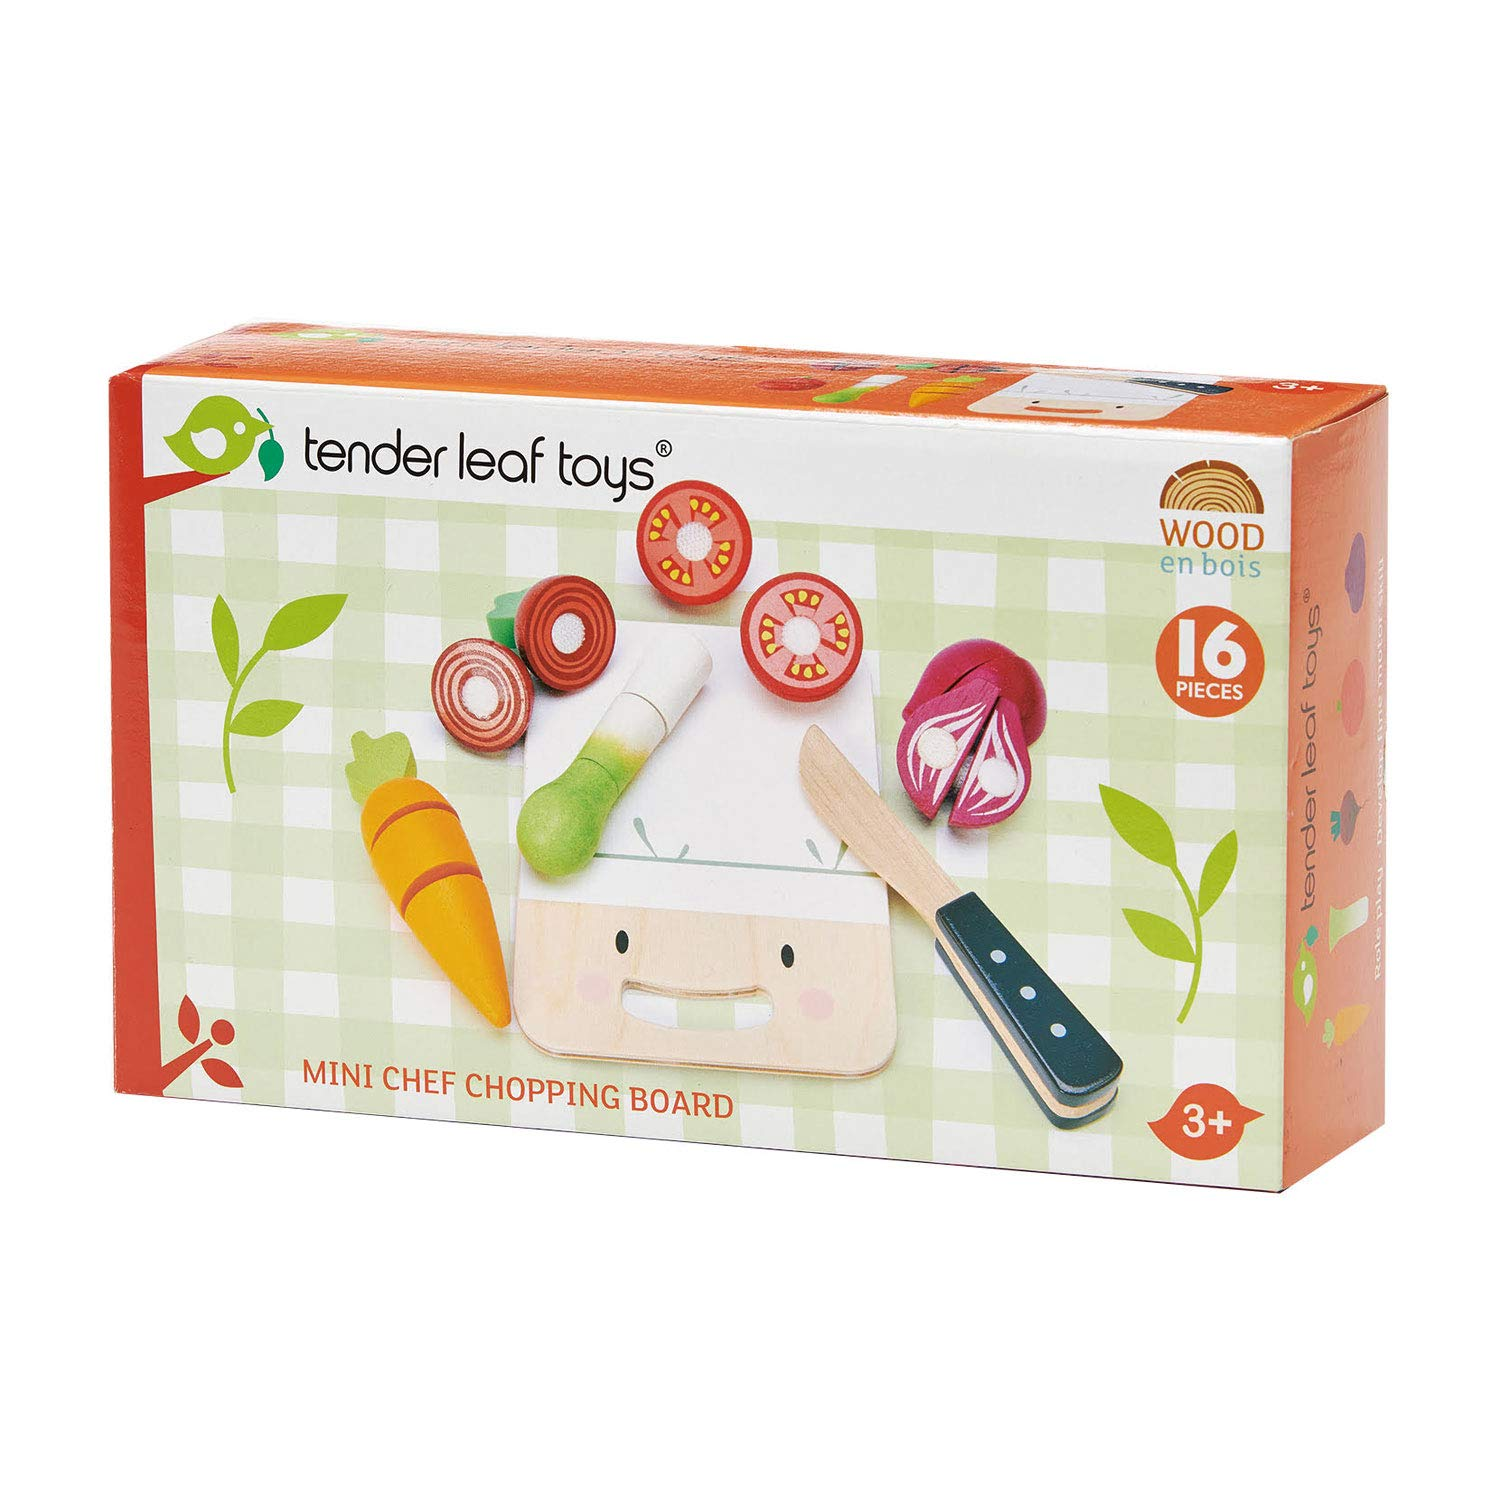 Tender Leaf Toys - Mini Chef Chopping Board - Pretend Food Play Cutting Toys with Various Velcroed Vegetables, Cutting Board and Knife - Encourage Role Play and Develops Social Skills for Children 3+